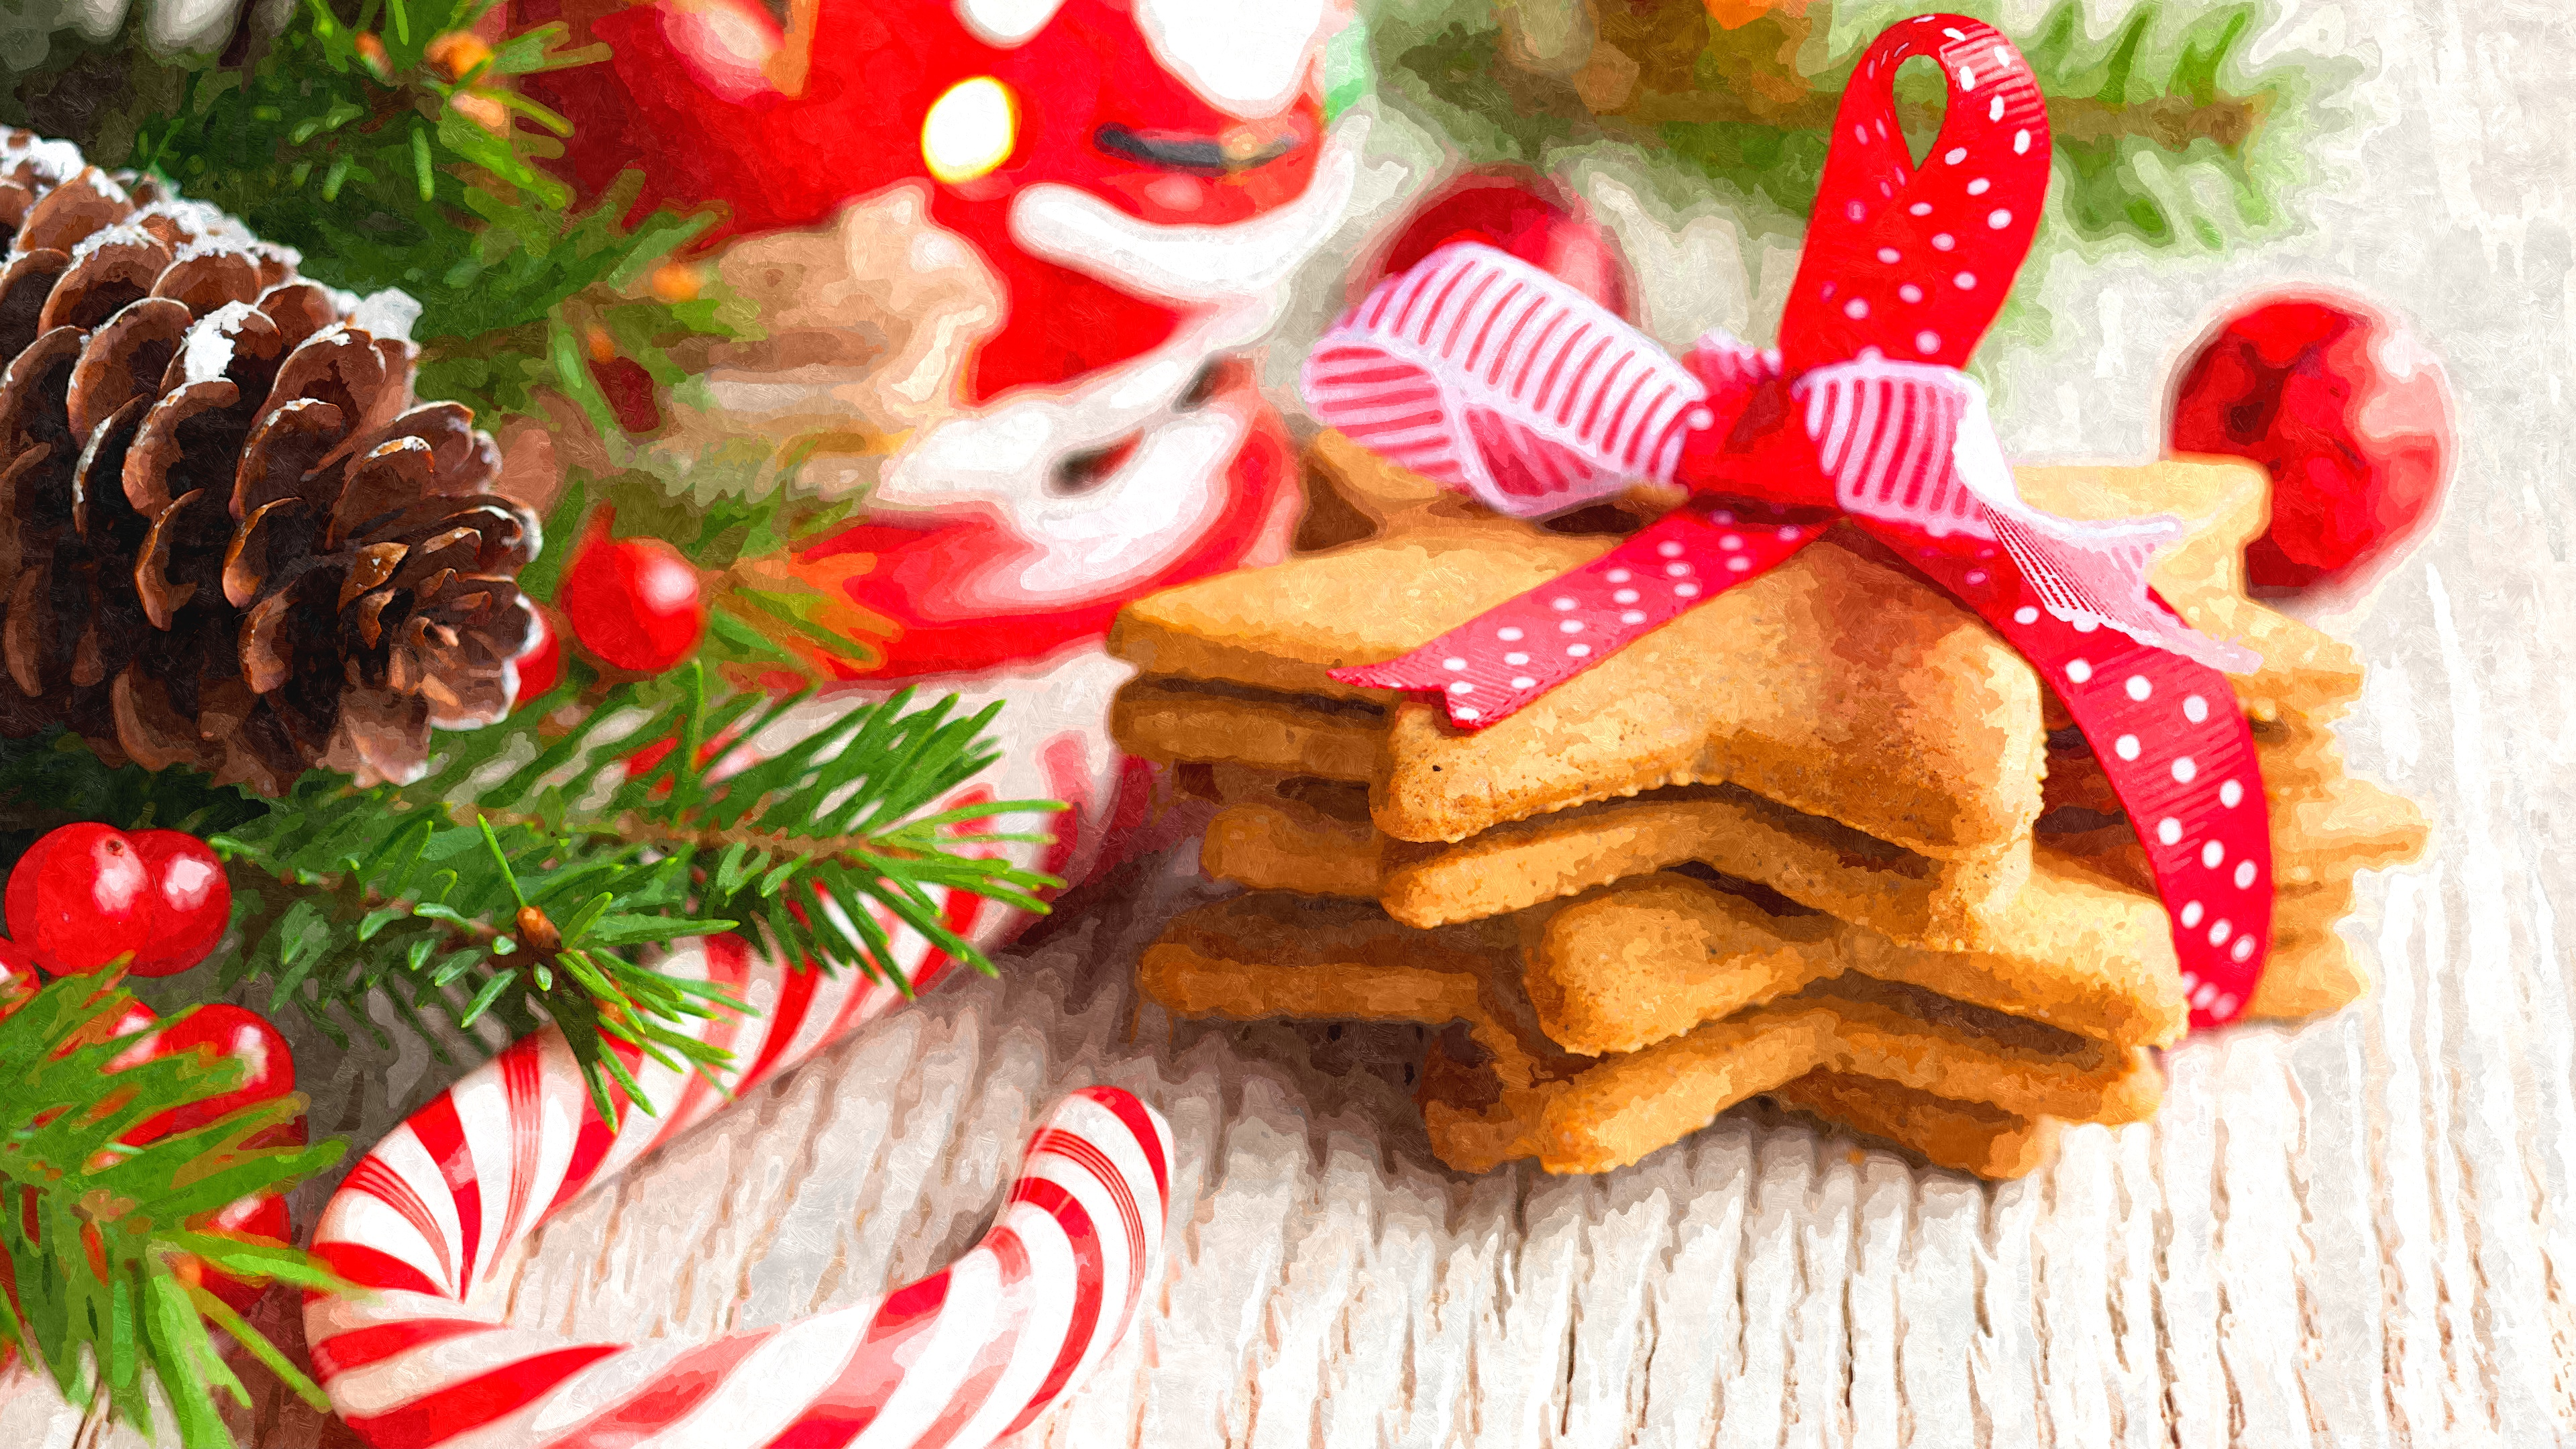 christmas_sweets_2-wallpaper-3840x2160